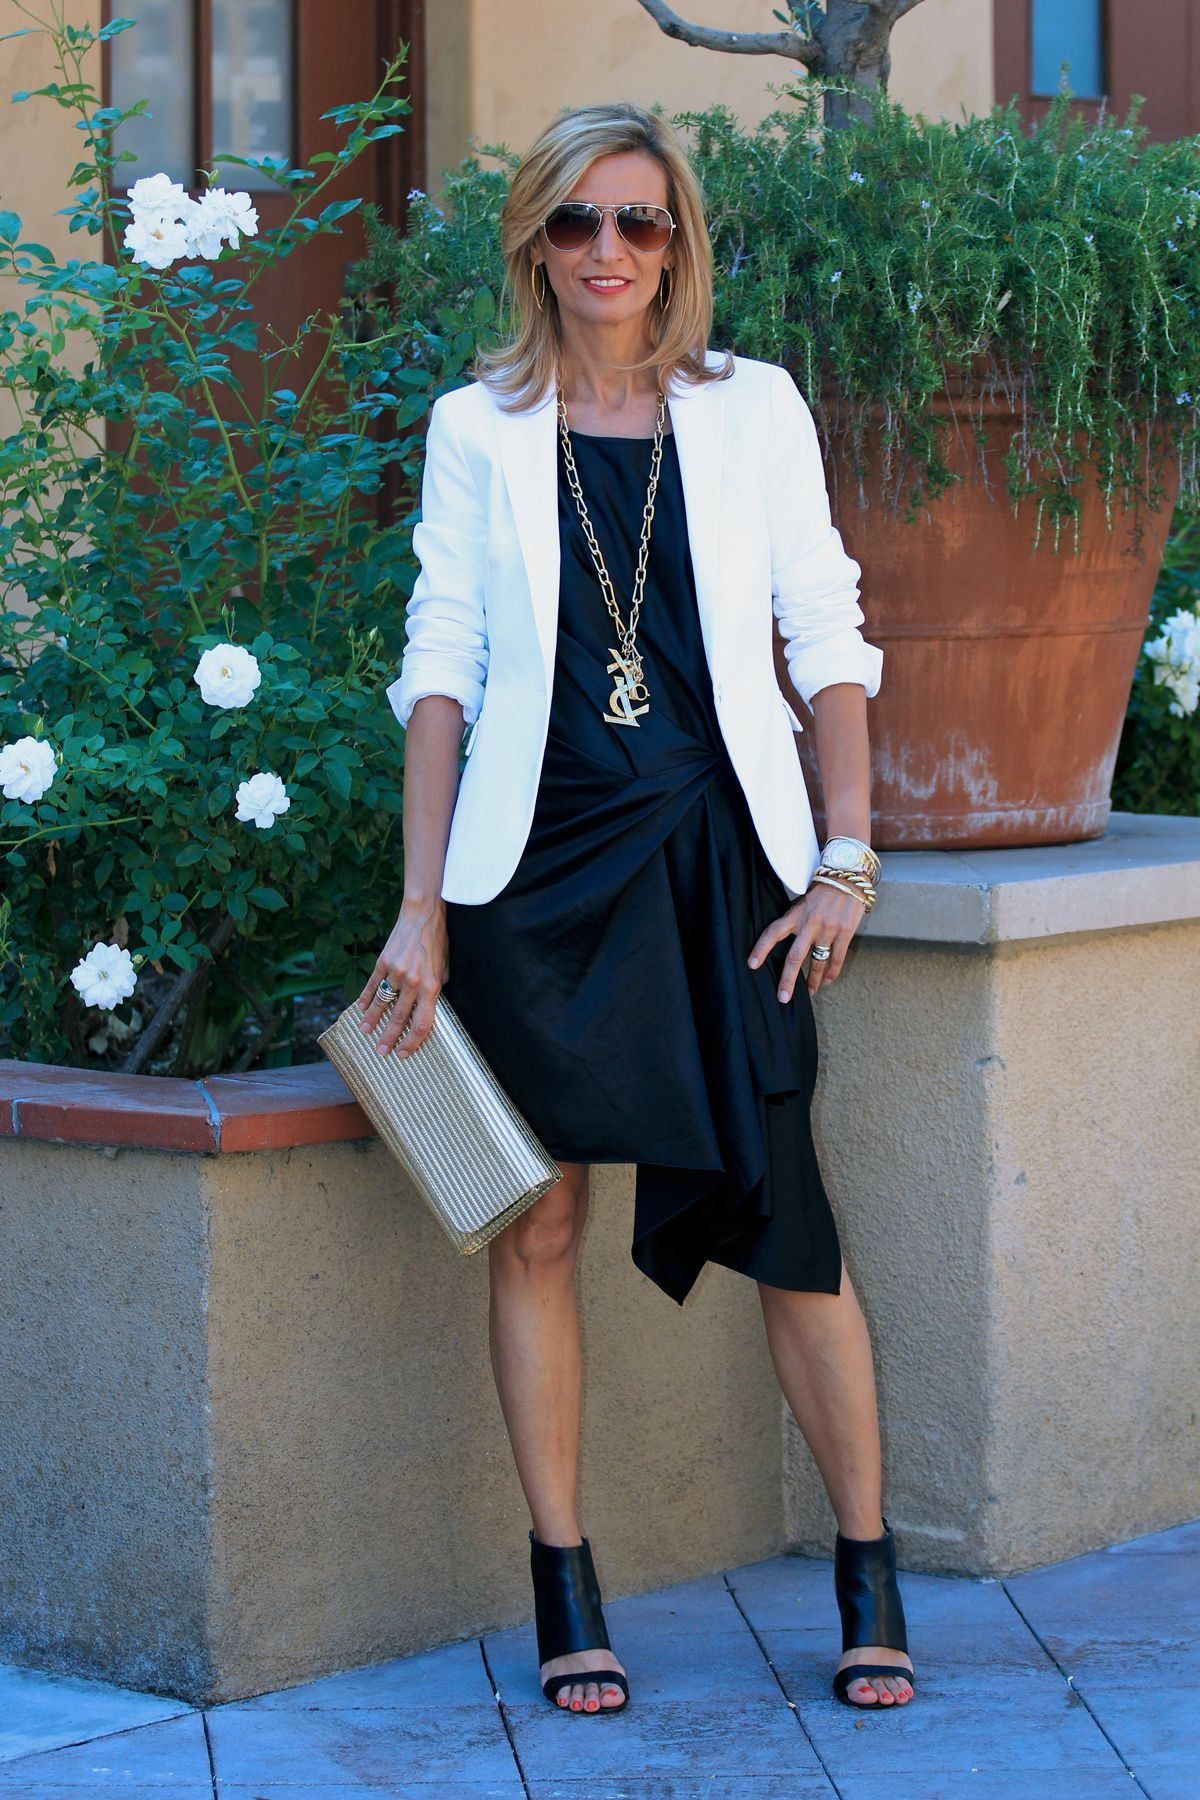 New blog story at www.jacketsociety.com/make-your-favorite-womens-classic-blazer-fun-and-sexy/